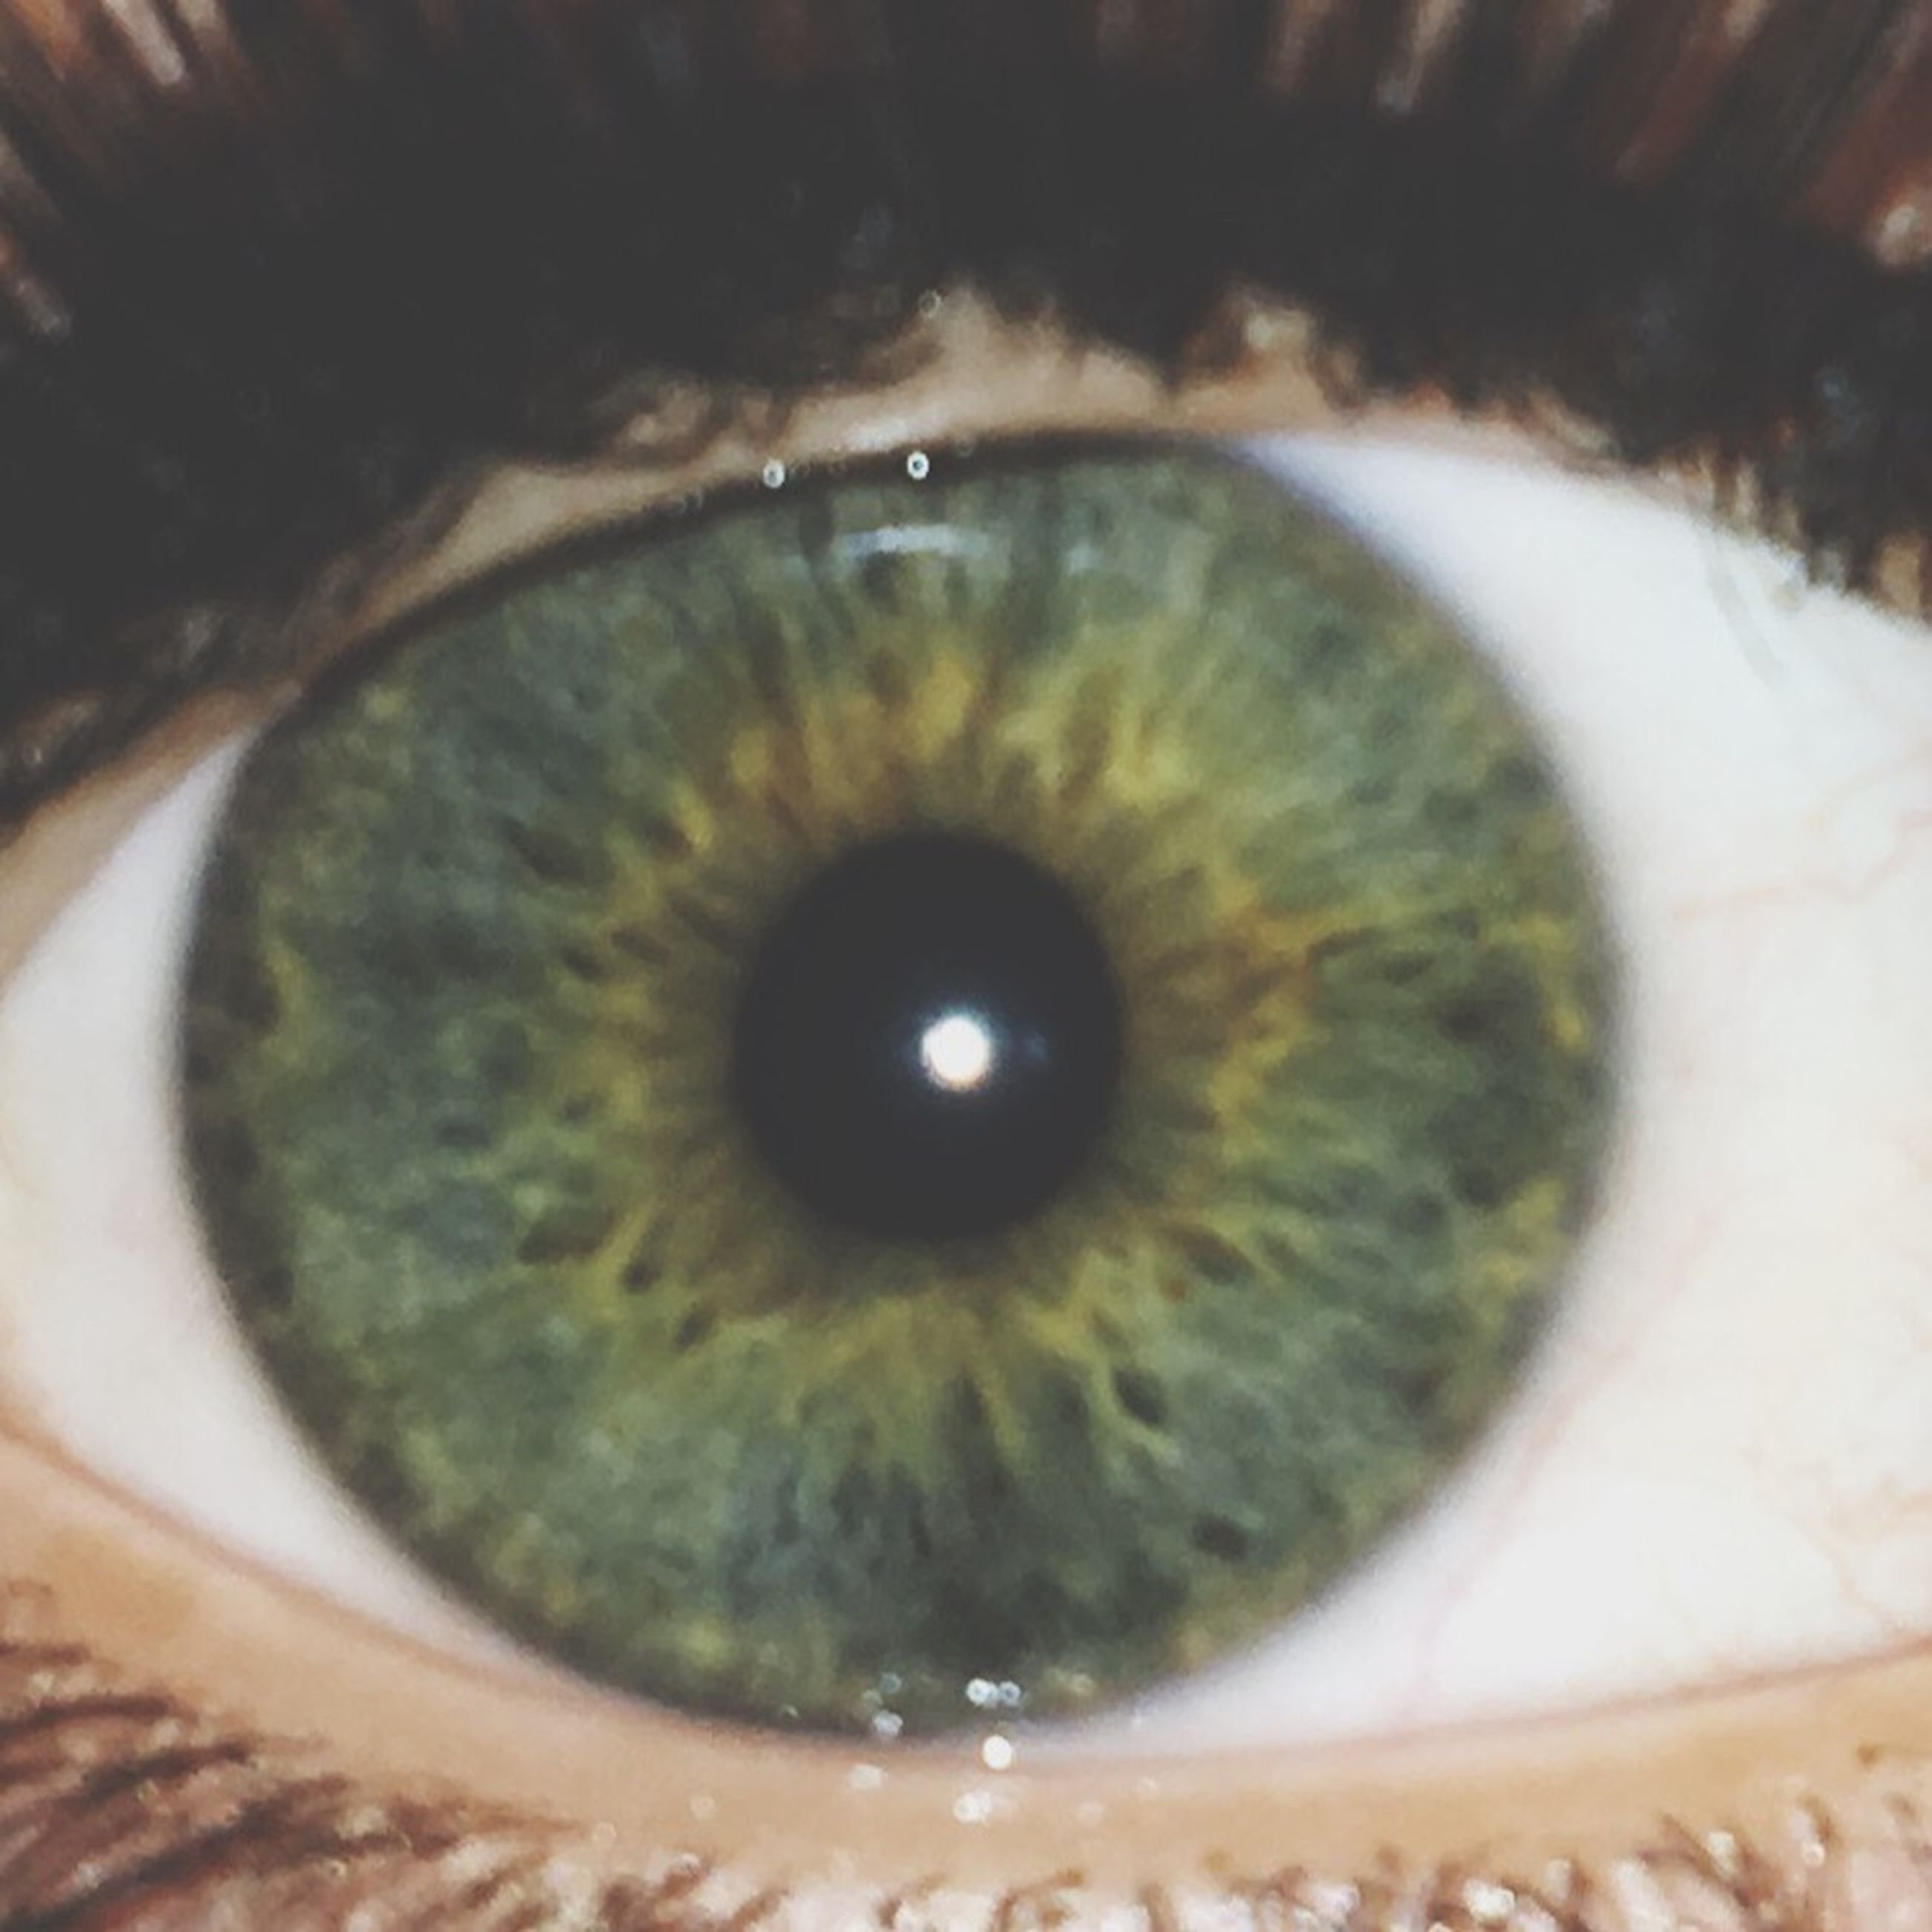 indoors, close-up, circle, human eye, eyesight, sensory perception, extreme close-up, selective focus, eyelash, portrait, part of, looking at camera, unrecognizable person, geometric shape, iris - eye, high angle view, extreme close up